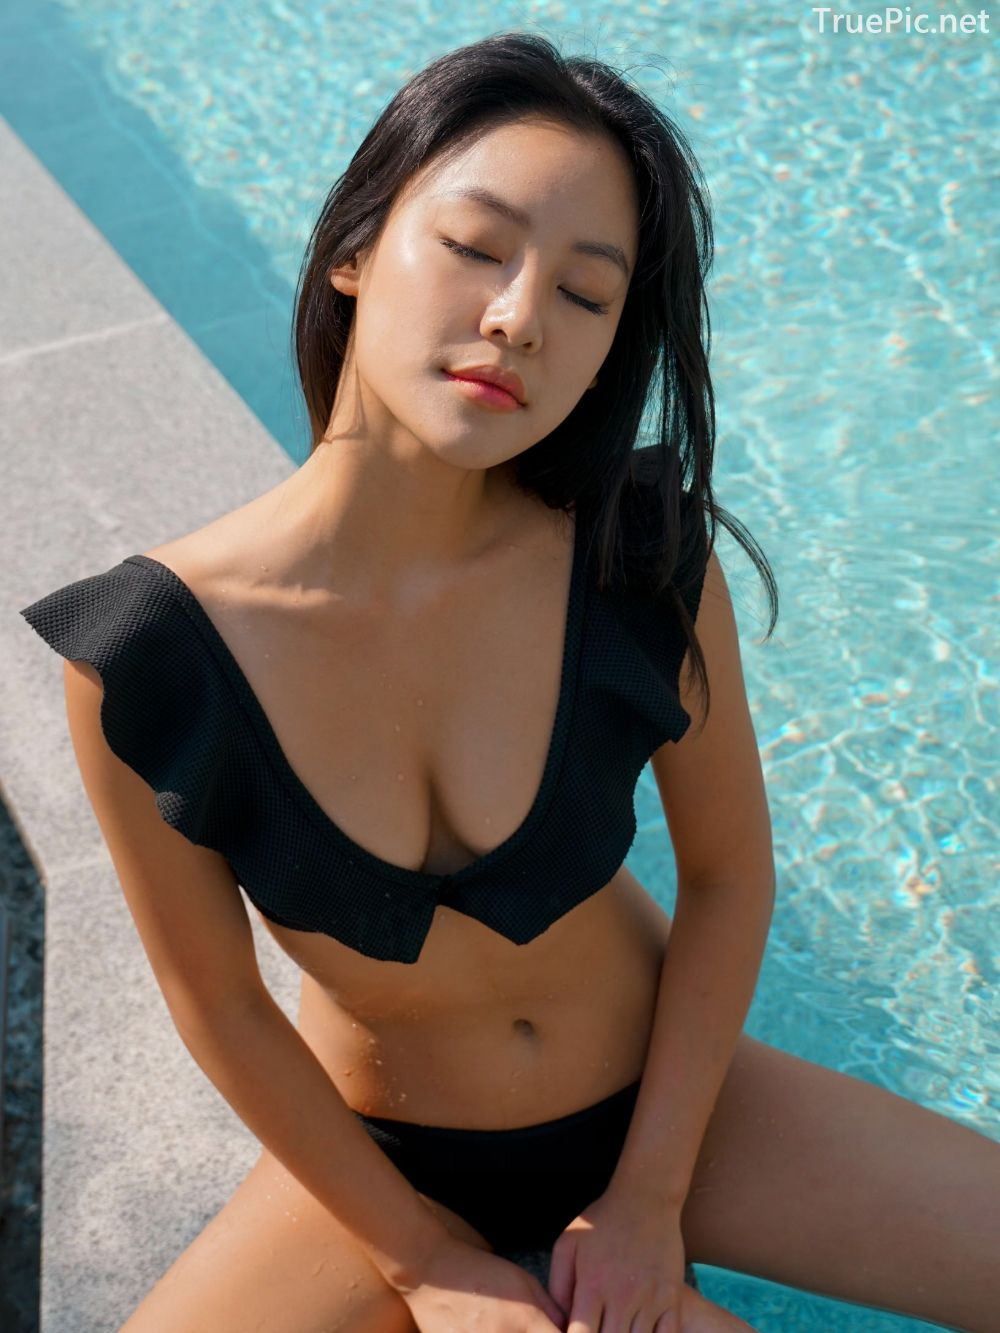 Korean model and fashion - Choi Seok Yeong - Alice Black and Blue Bikini - Picture 9